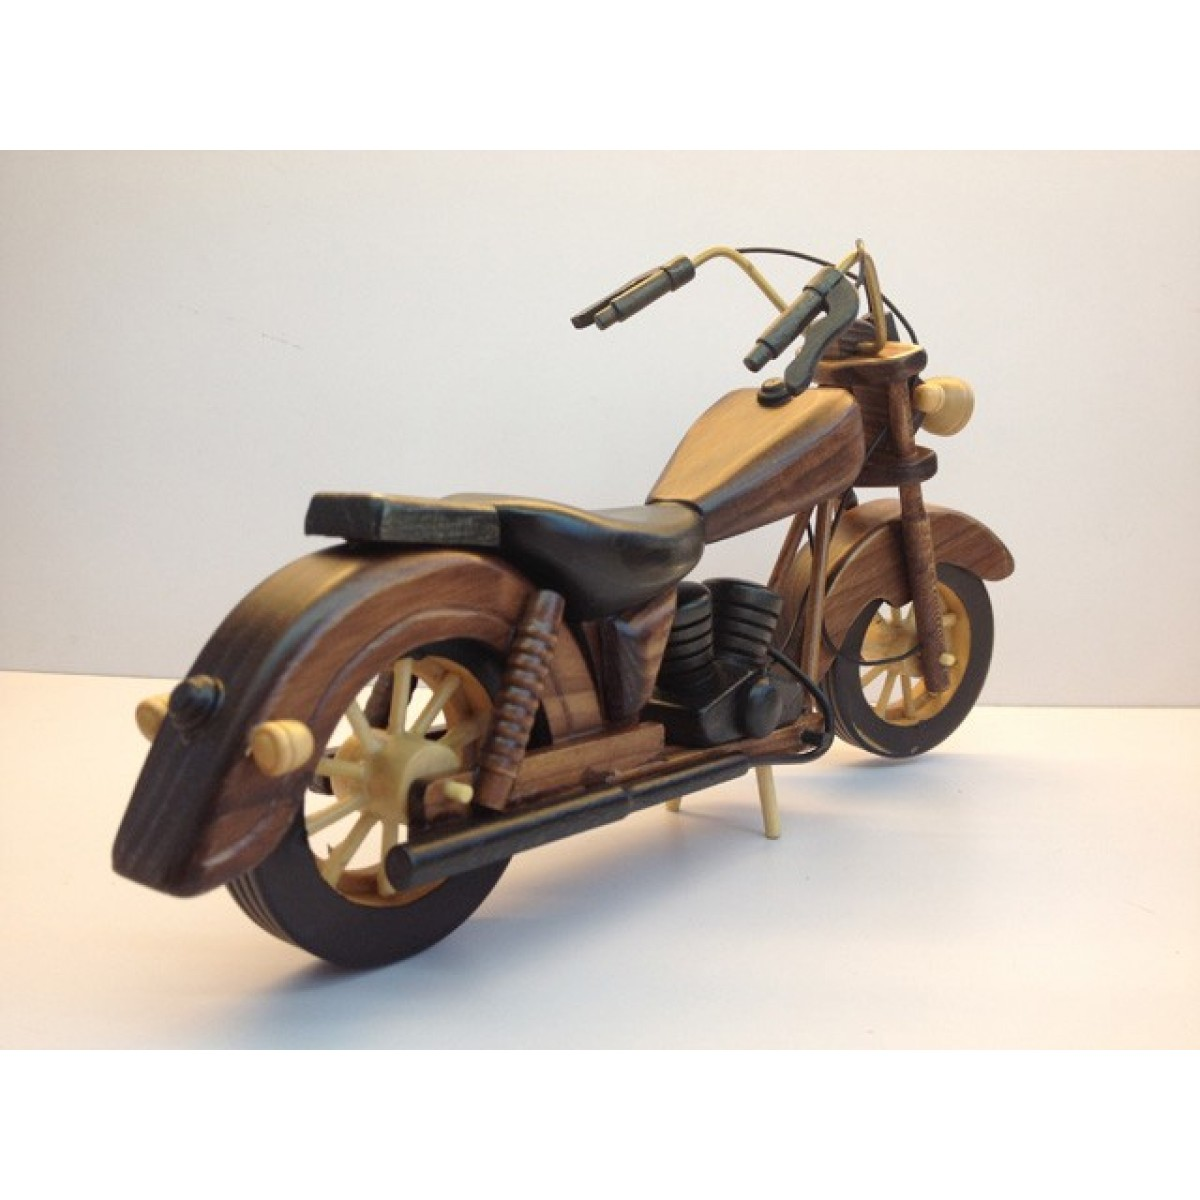 Handmade Wooden Home Decorative Novel Vintage Motorbike Model B